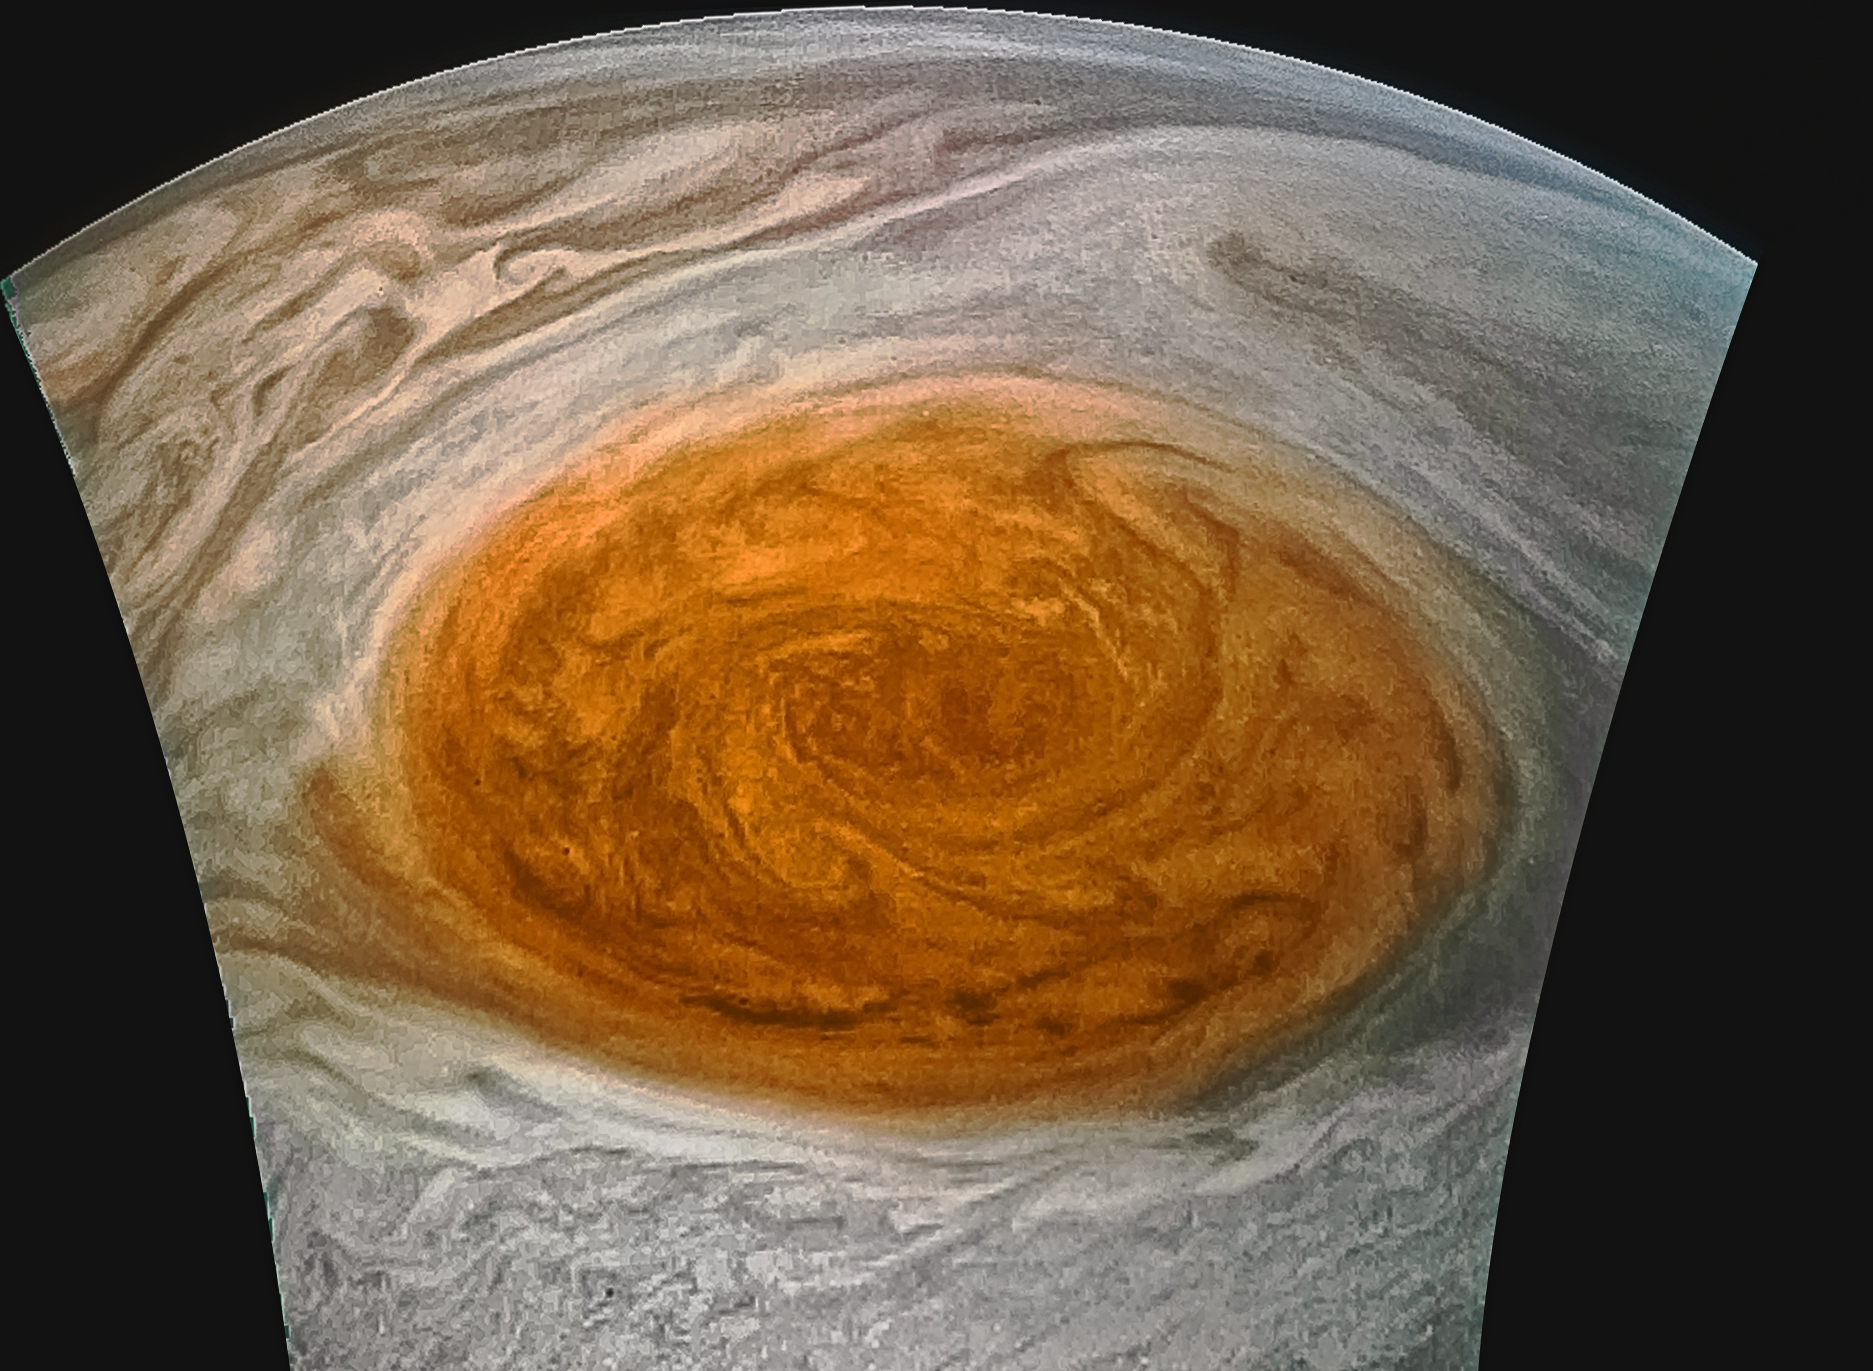 Enhanced Jupiter Red Spot Image from Juno